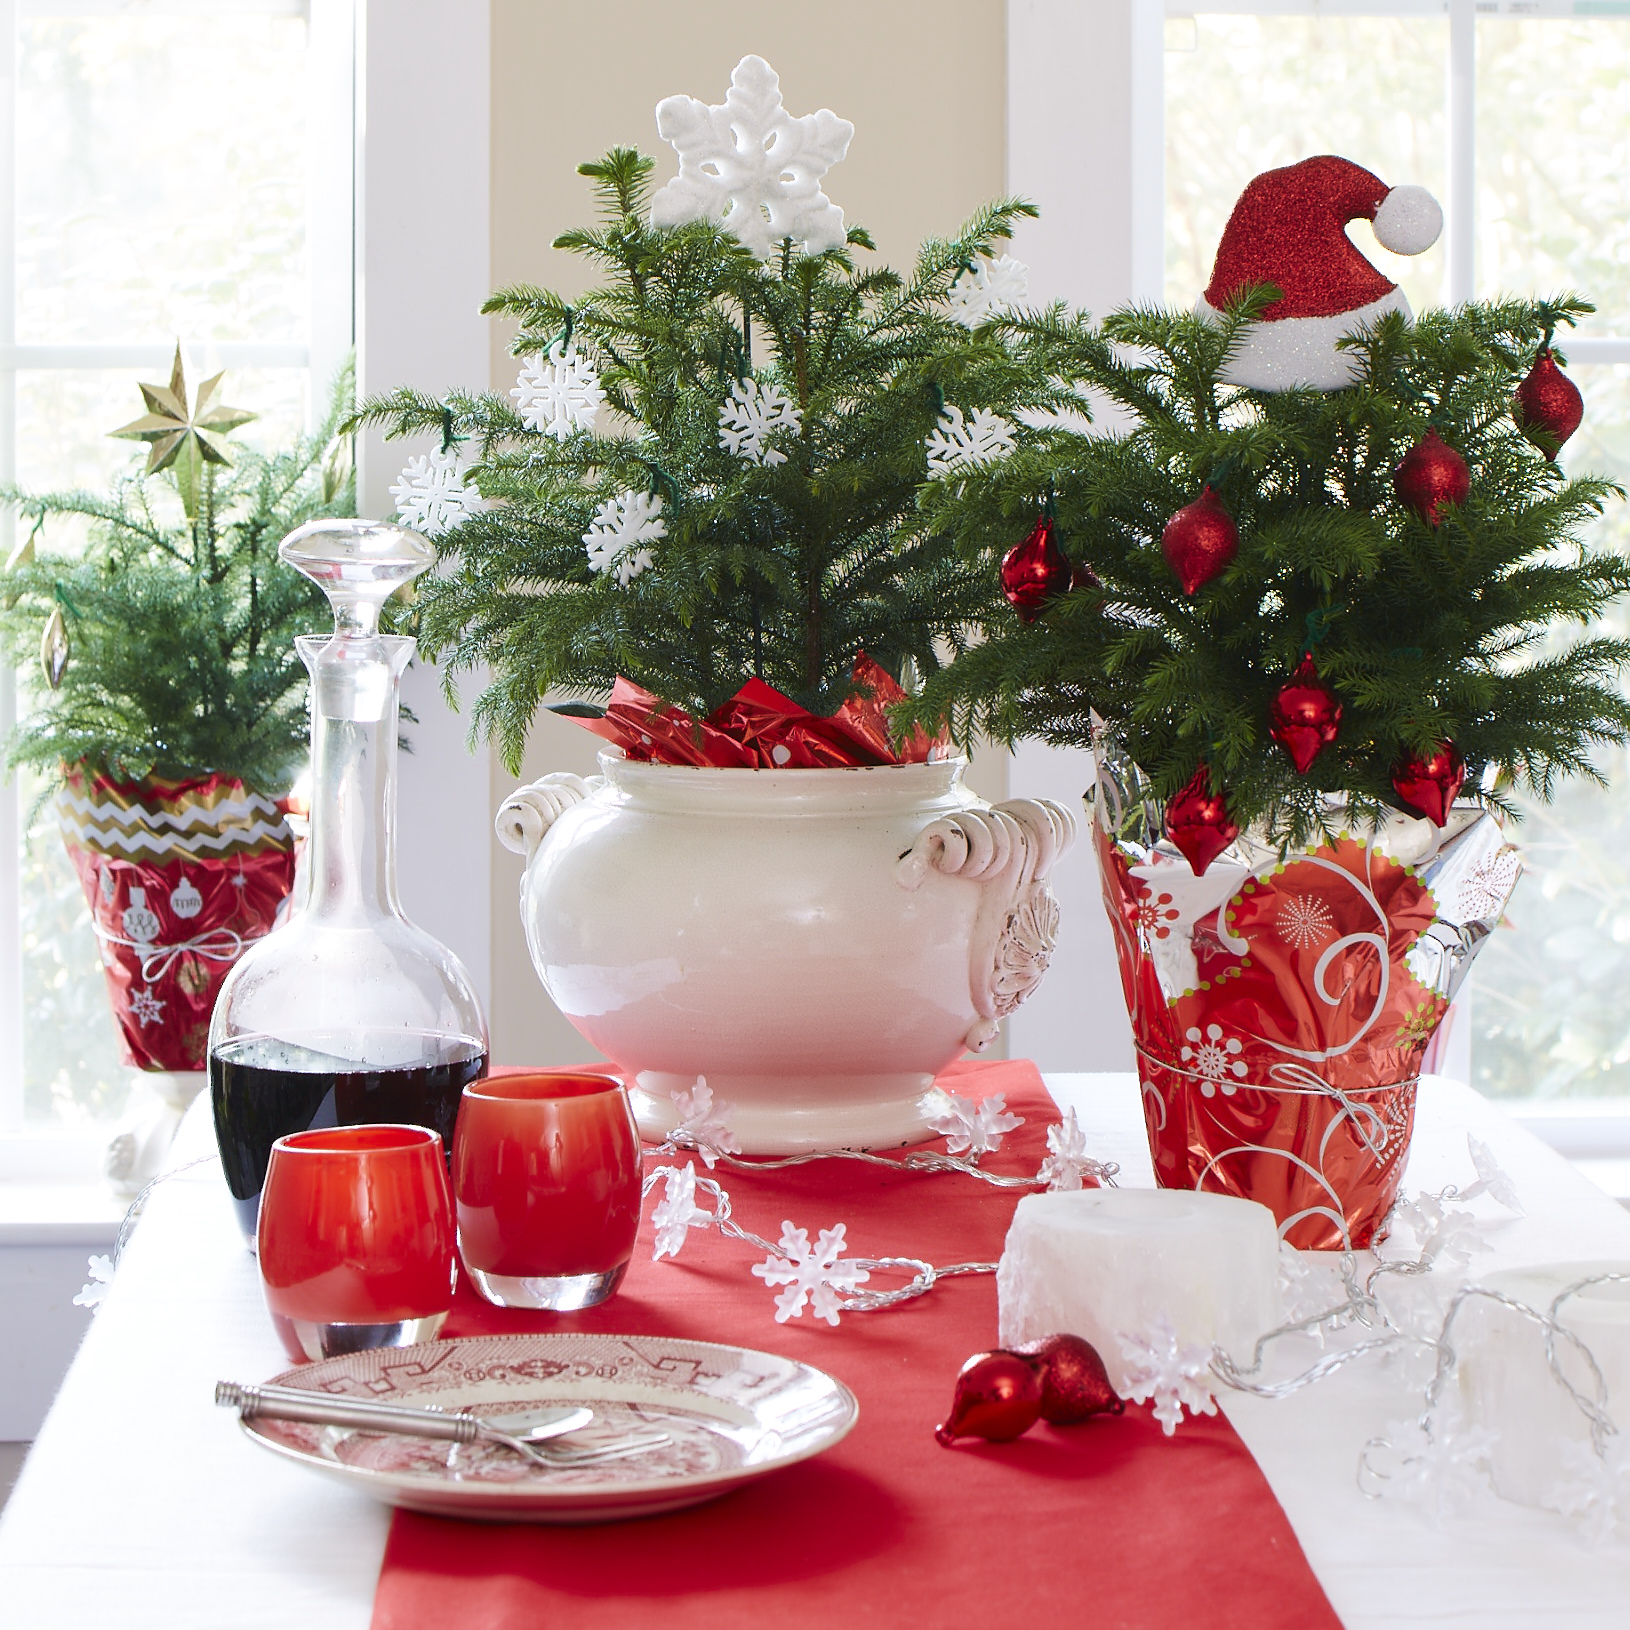 Decorating Dilemma House Plants: Last Minute Holiday Gift Ideas For Gardeners In 2014